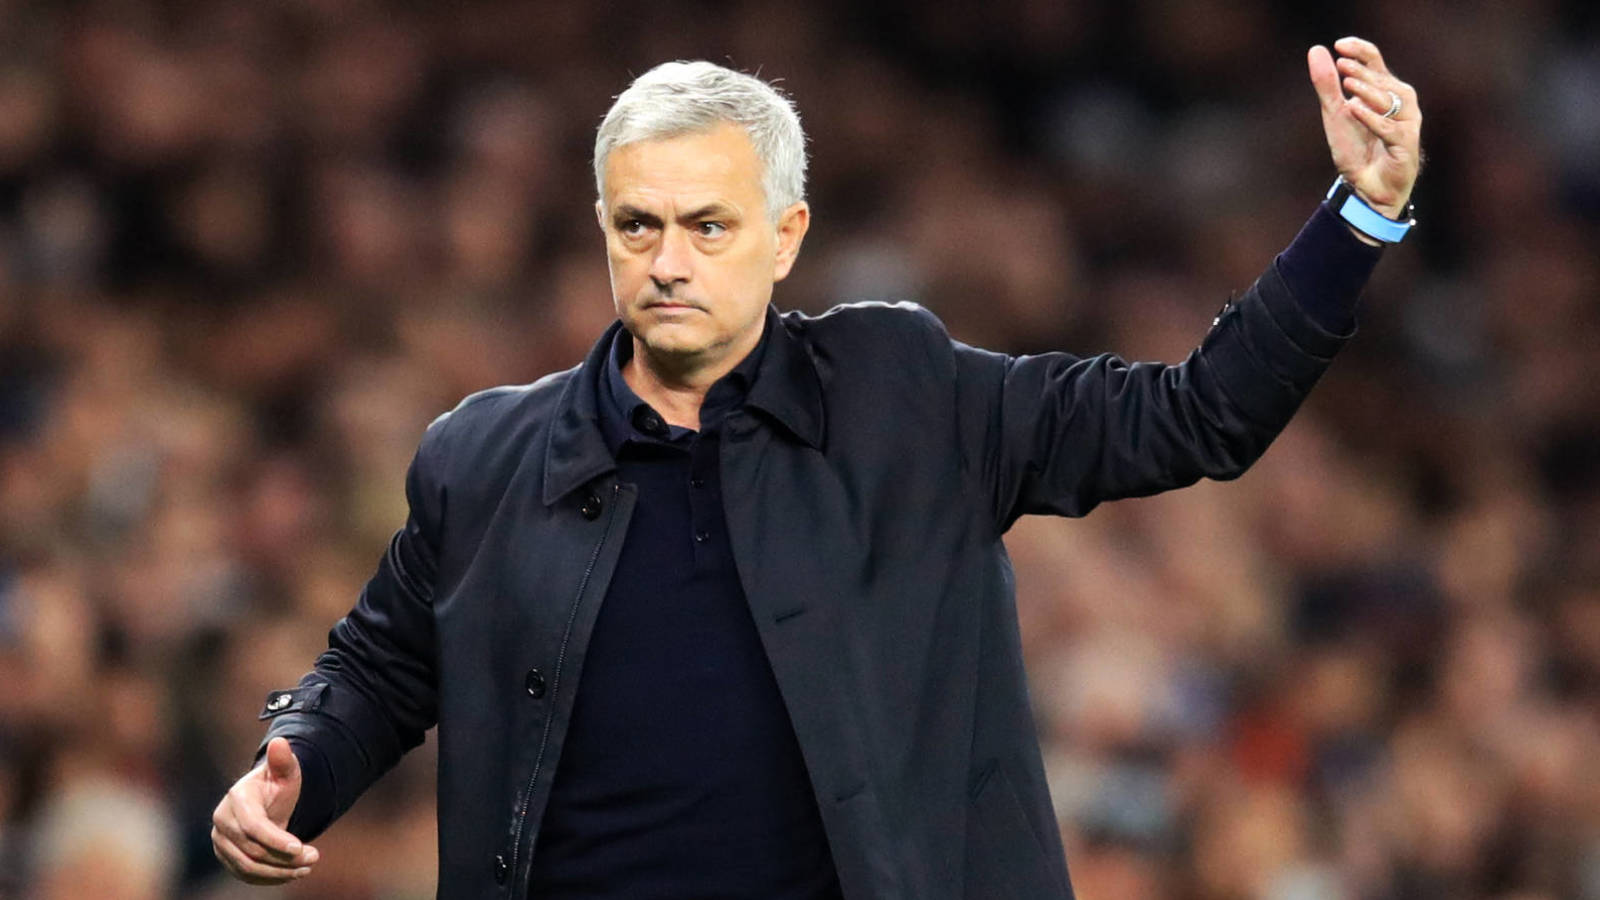 Jose Mourinho returns to the Premier League a changed man... or so he says